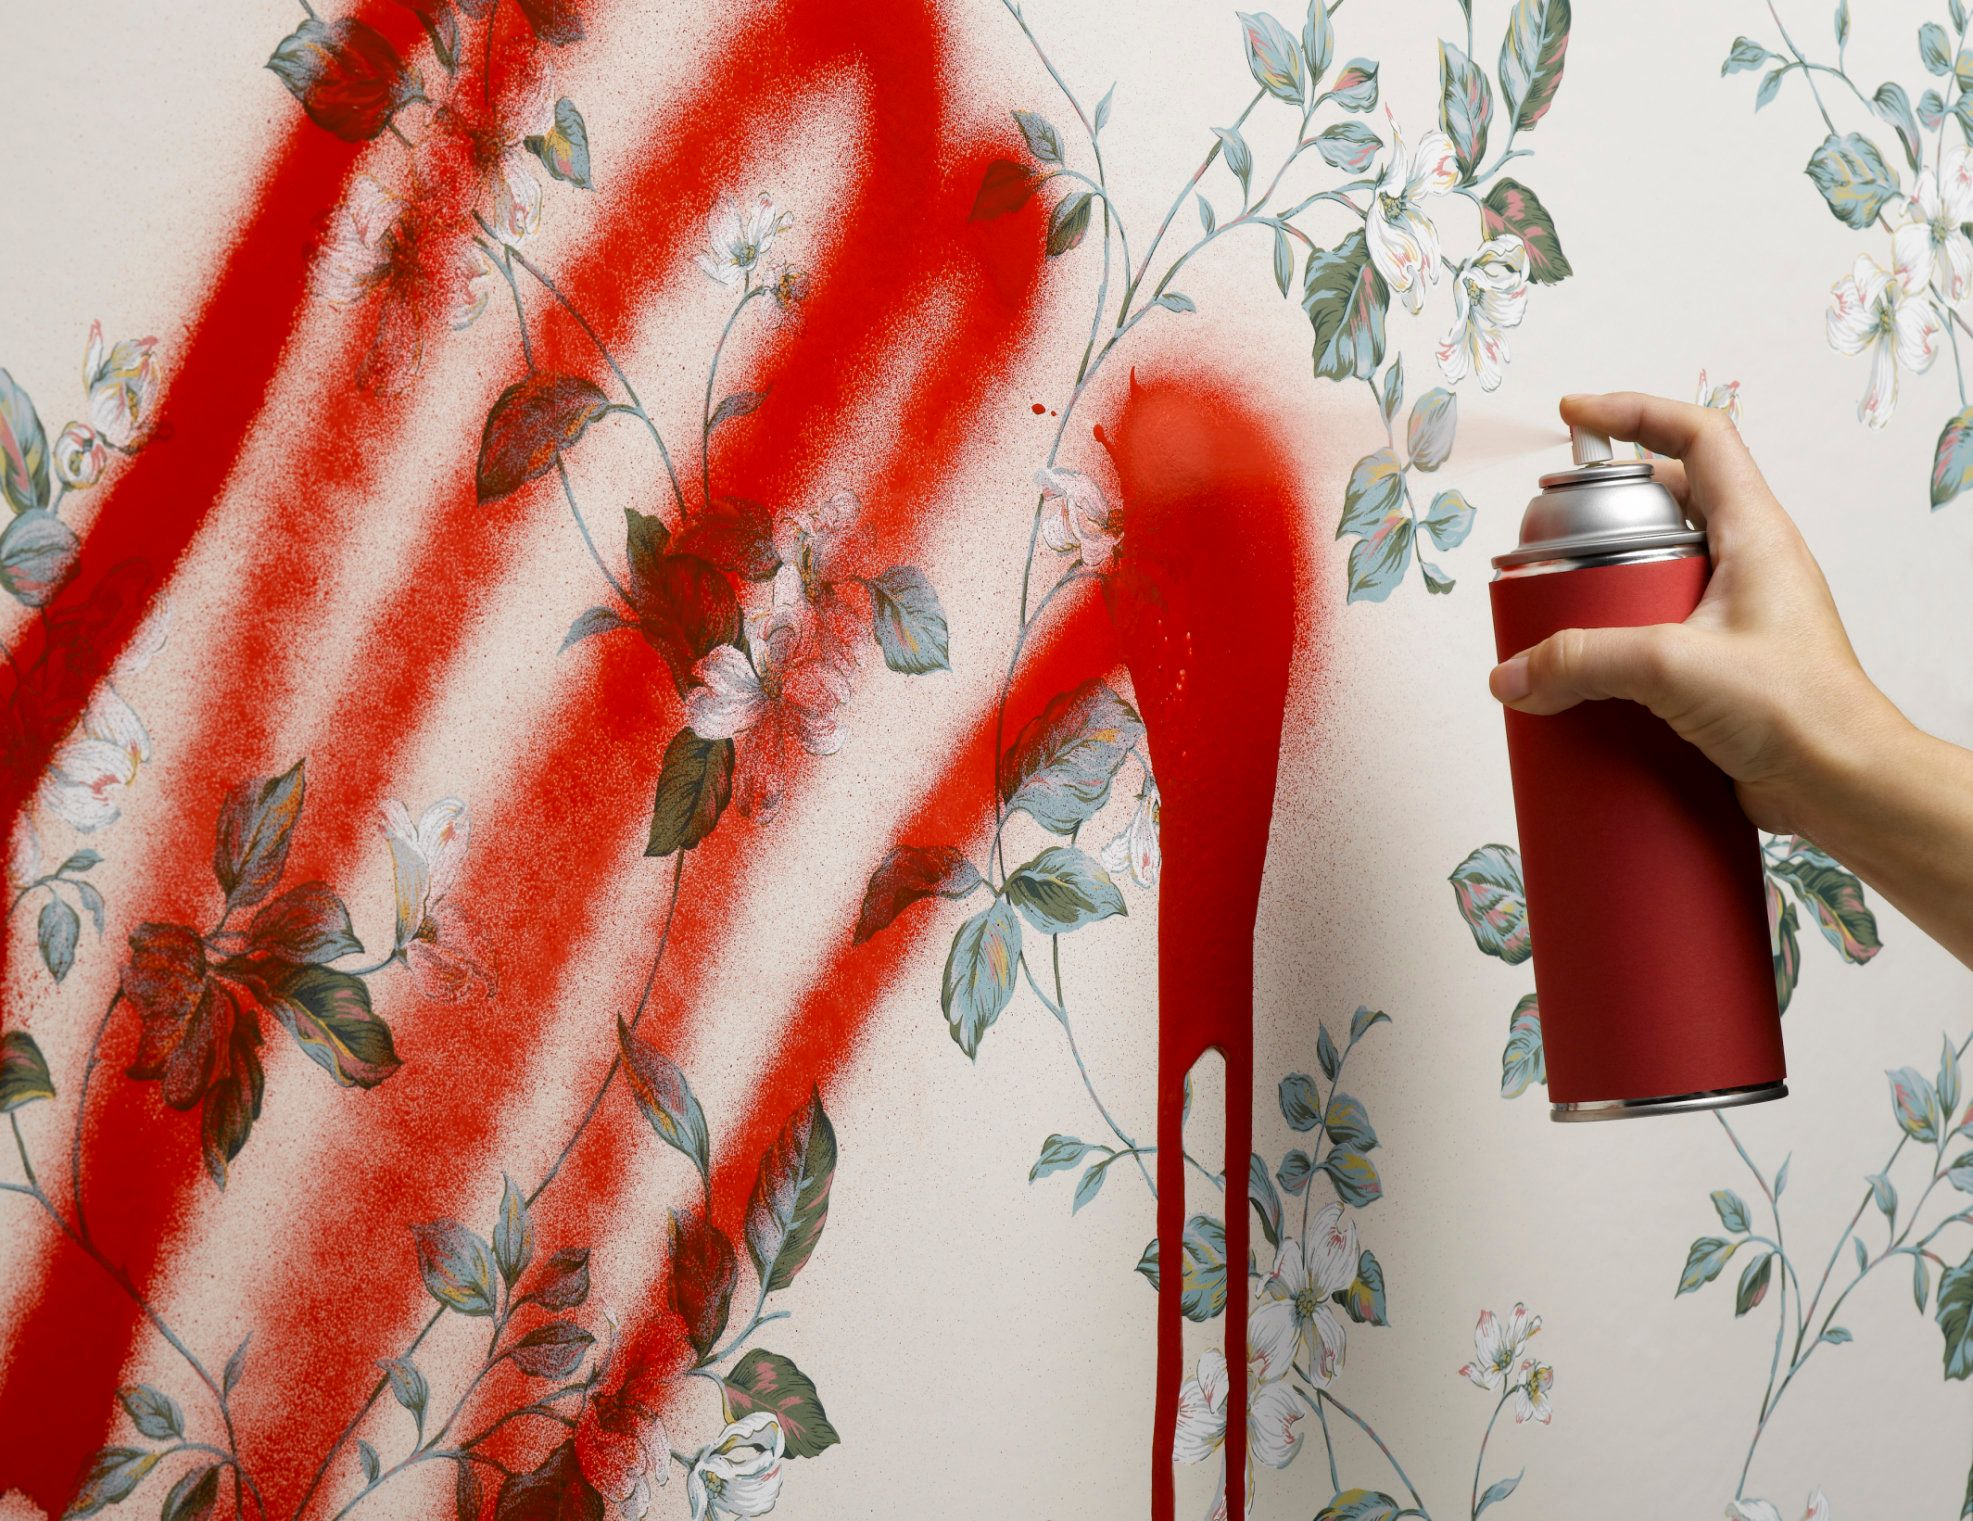 Female hand spray painting wallpaper